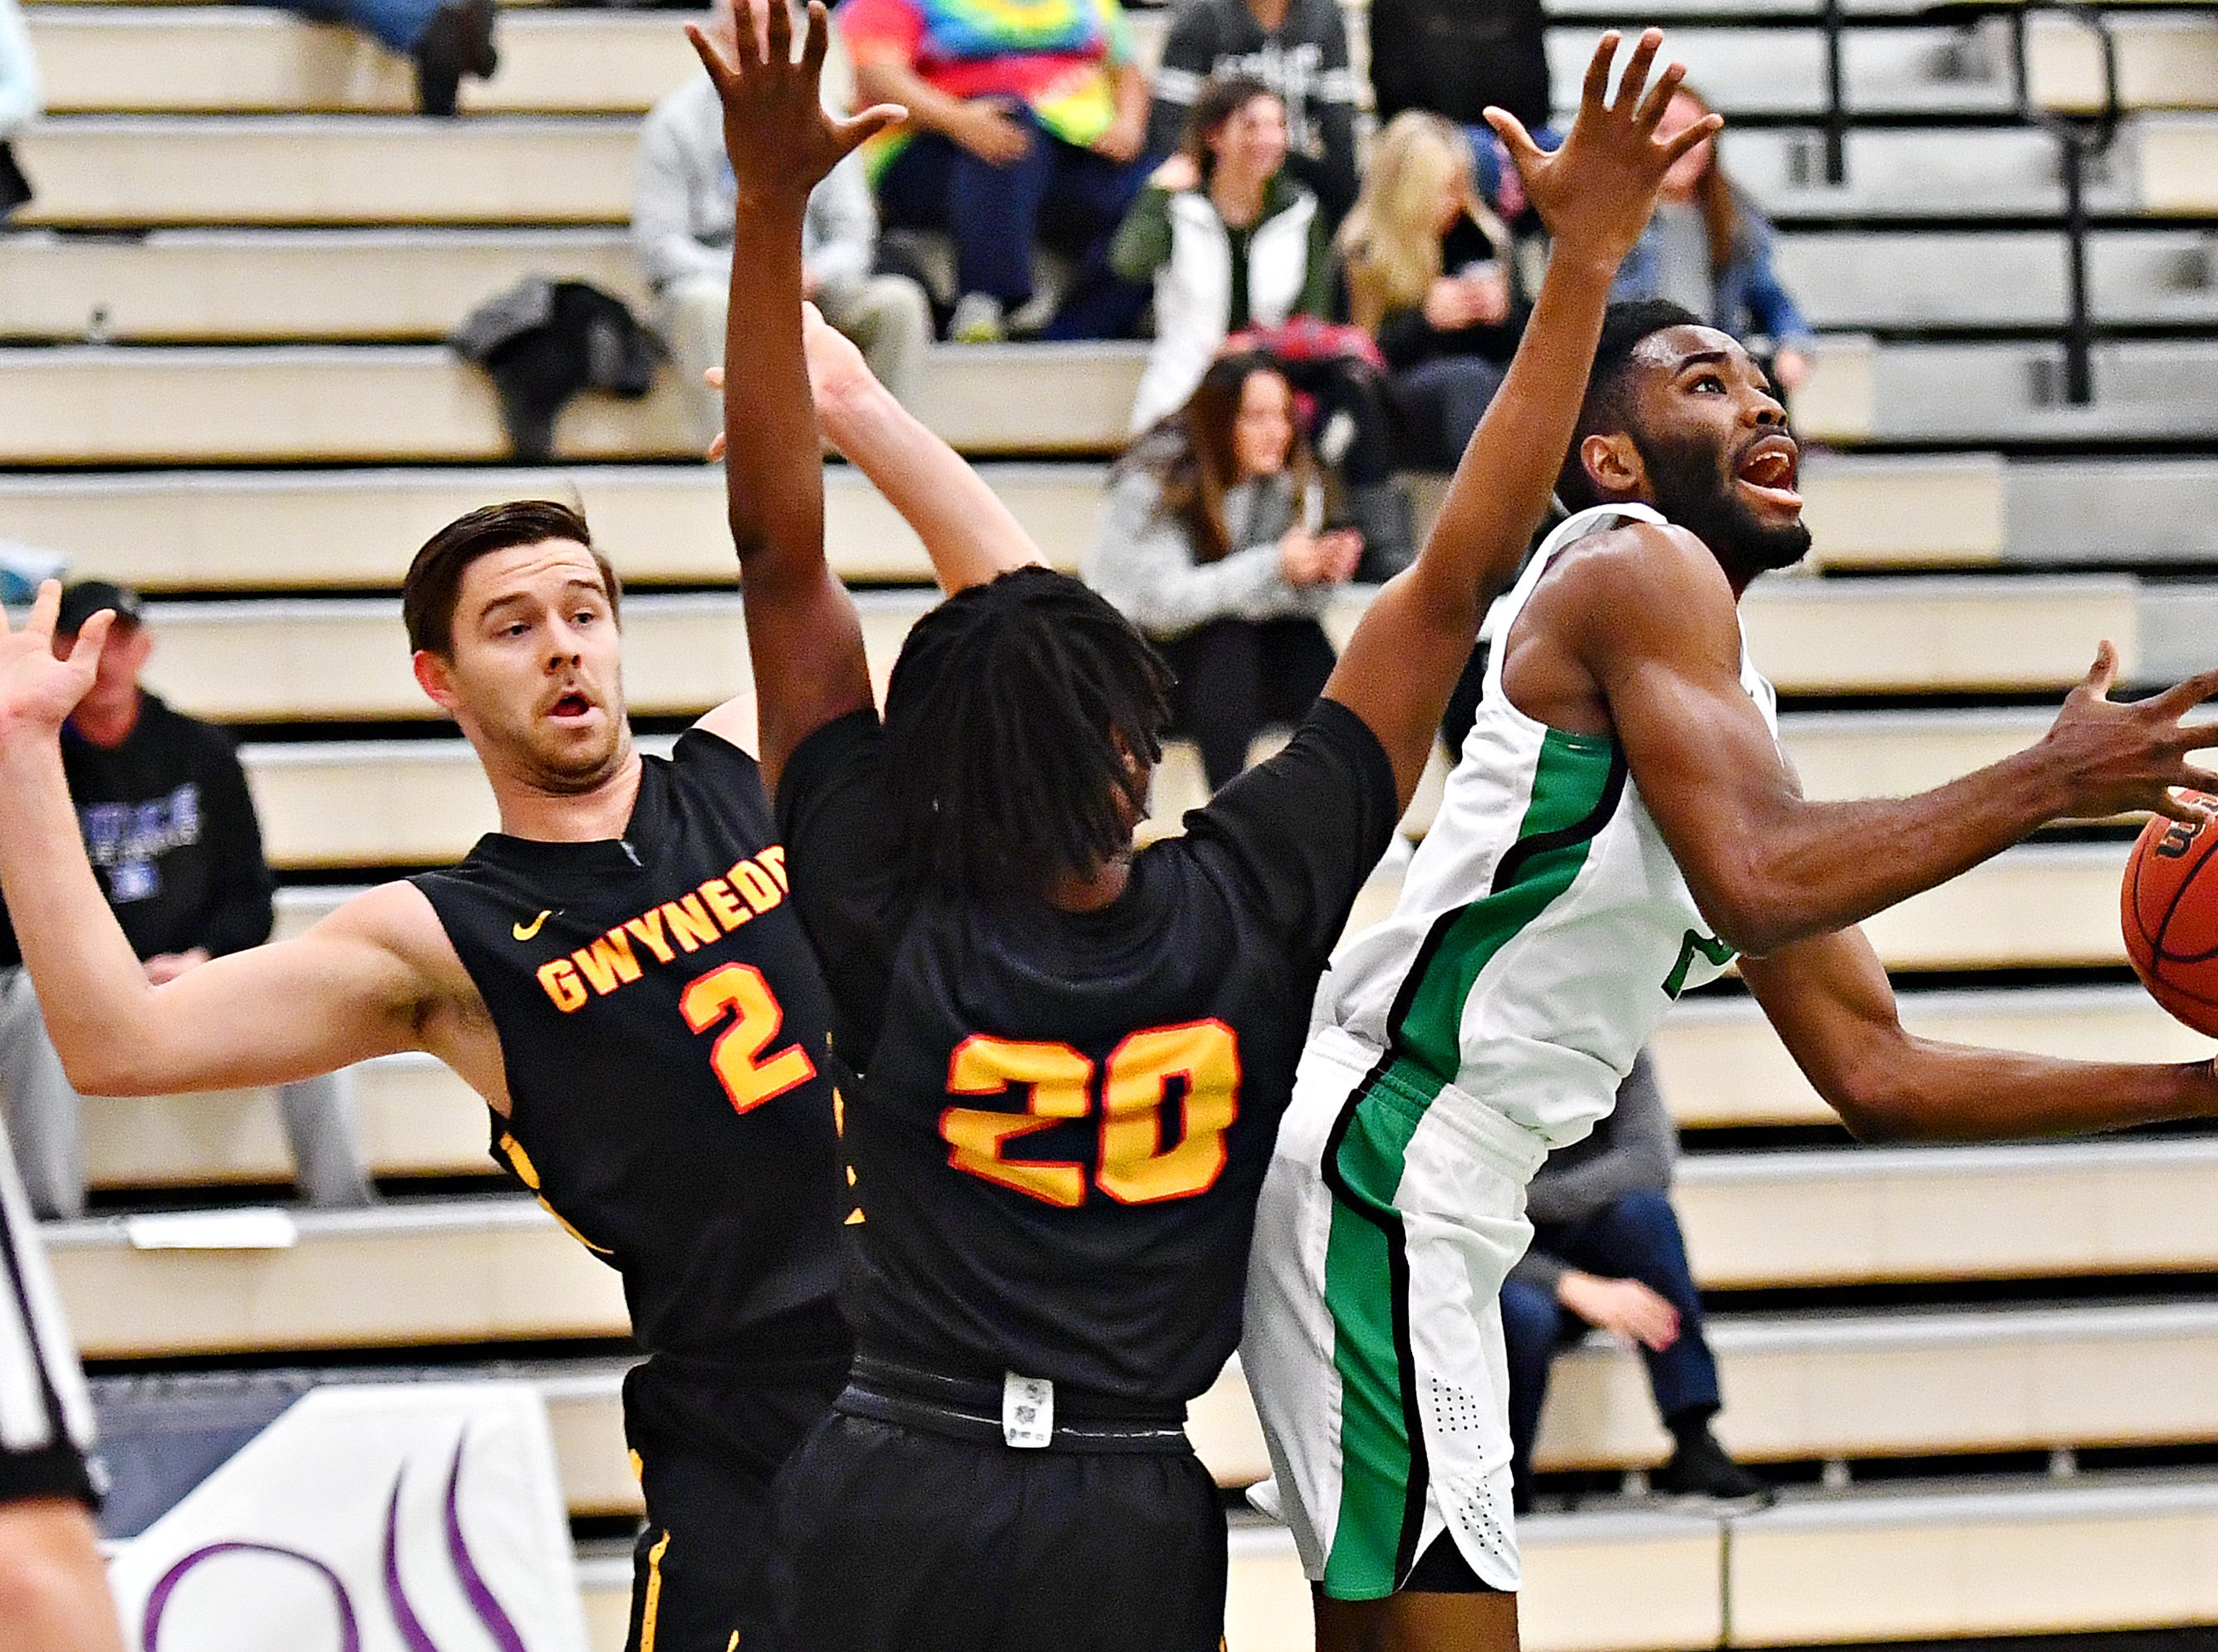 York College's Jason Bady, right, pushes past Gwynedd-Mercy's Jeff Seigafuse, left, and Clayton Wolfe during men's basketball action at Grumbacher Sport and Fitness Center in Spring Garden Township, Wednesday, Nov. 28, 2018. Dawn J. Sagert photo